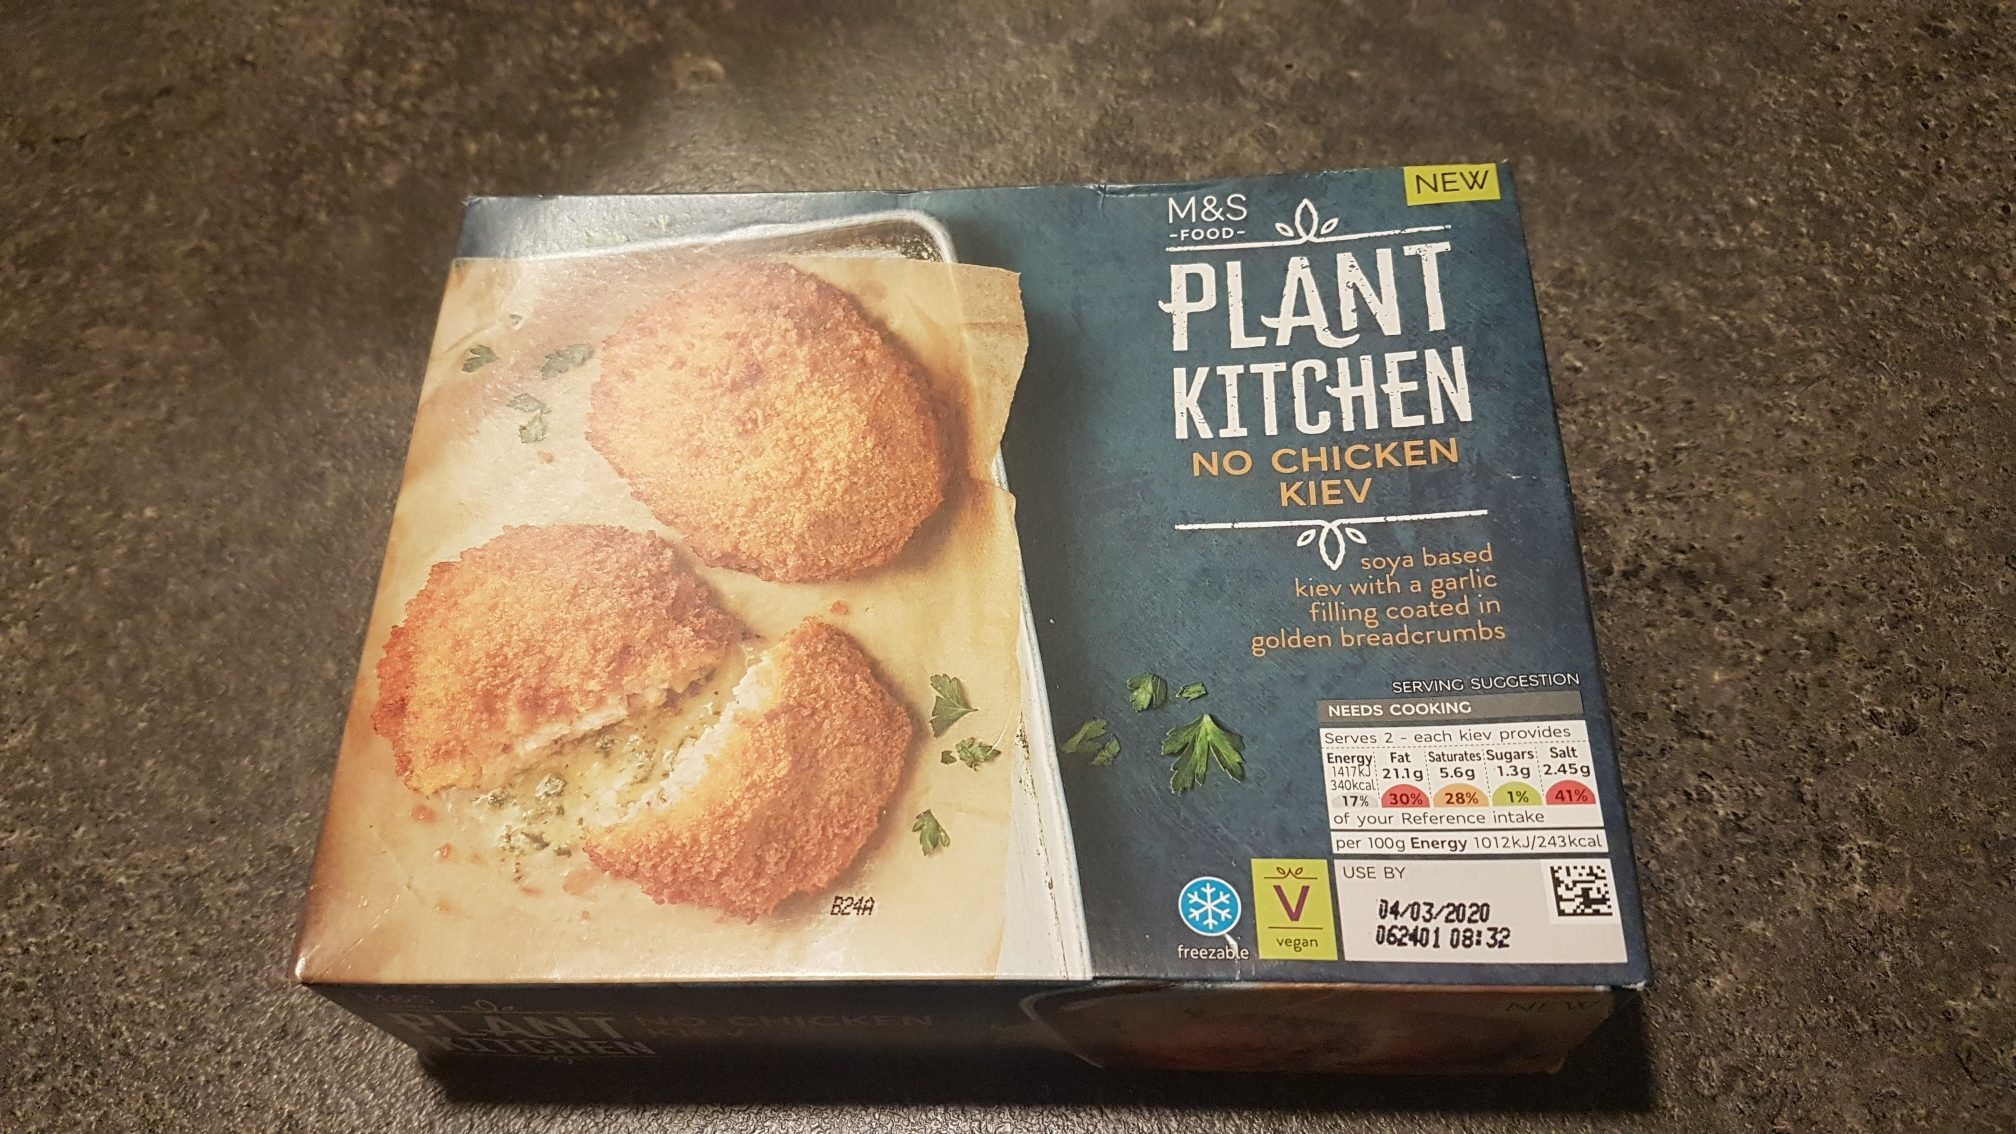 M&S No Chicken Kiev review